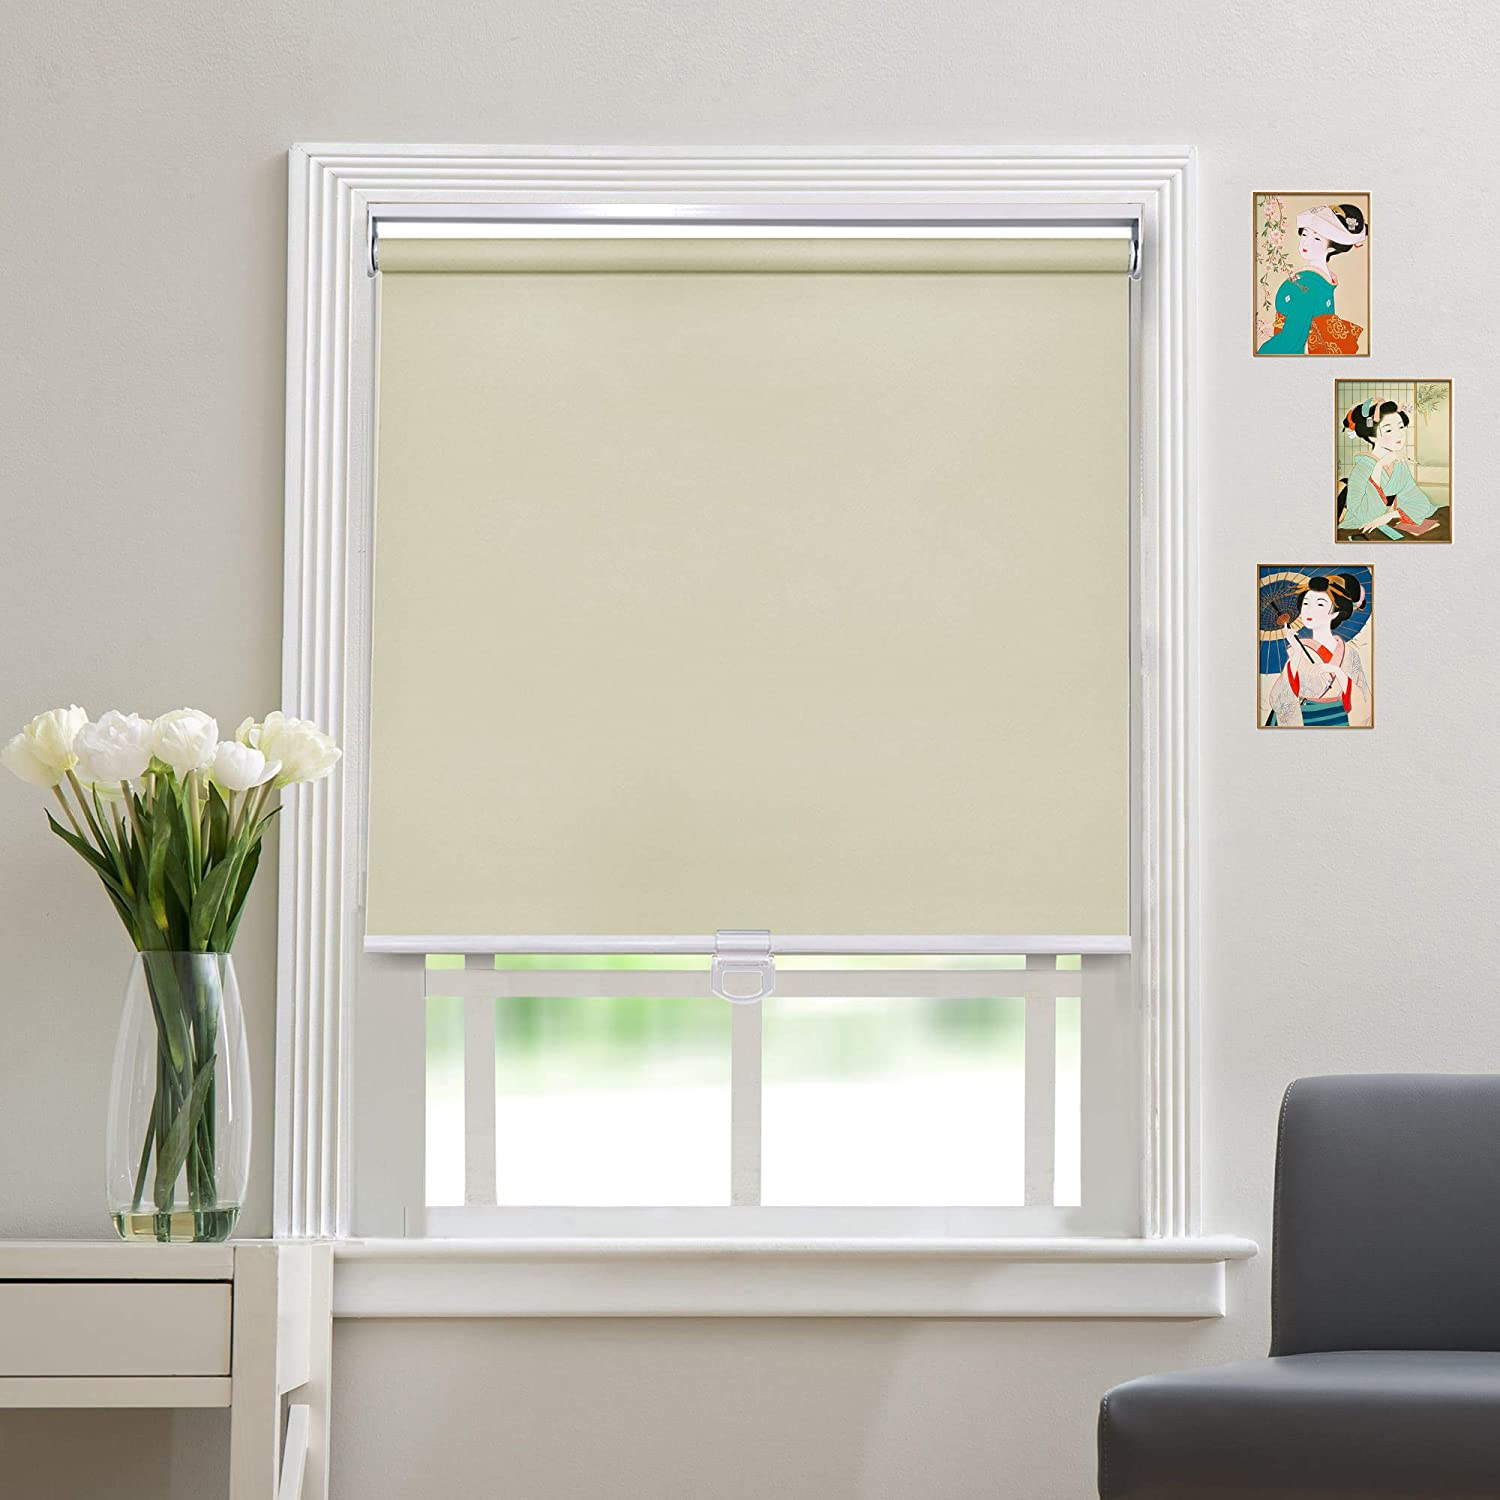 Blackout Cordless Roller Blinds and Windows - Shades for Max 53% OFF discount Safety